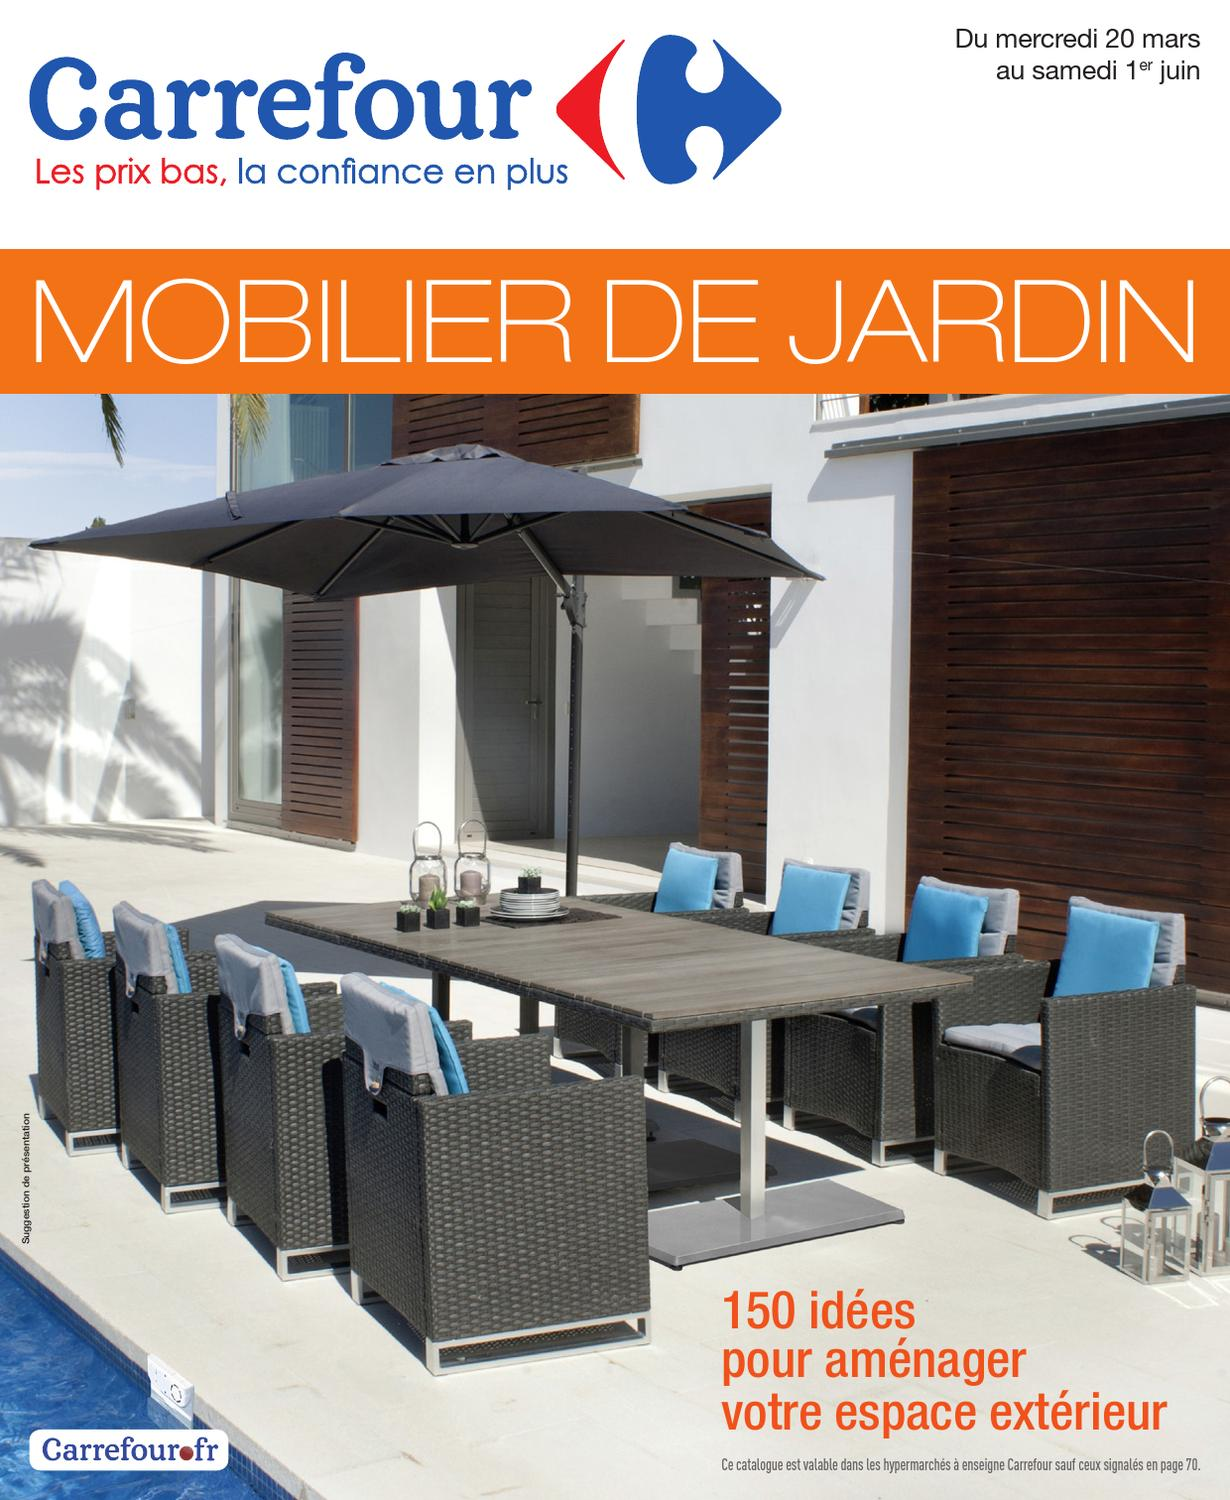 Carrefour 20 3 1 6 2013 by proomo france issuu for Salon de jardin carrefour home